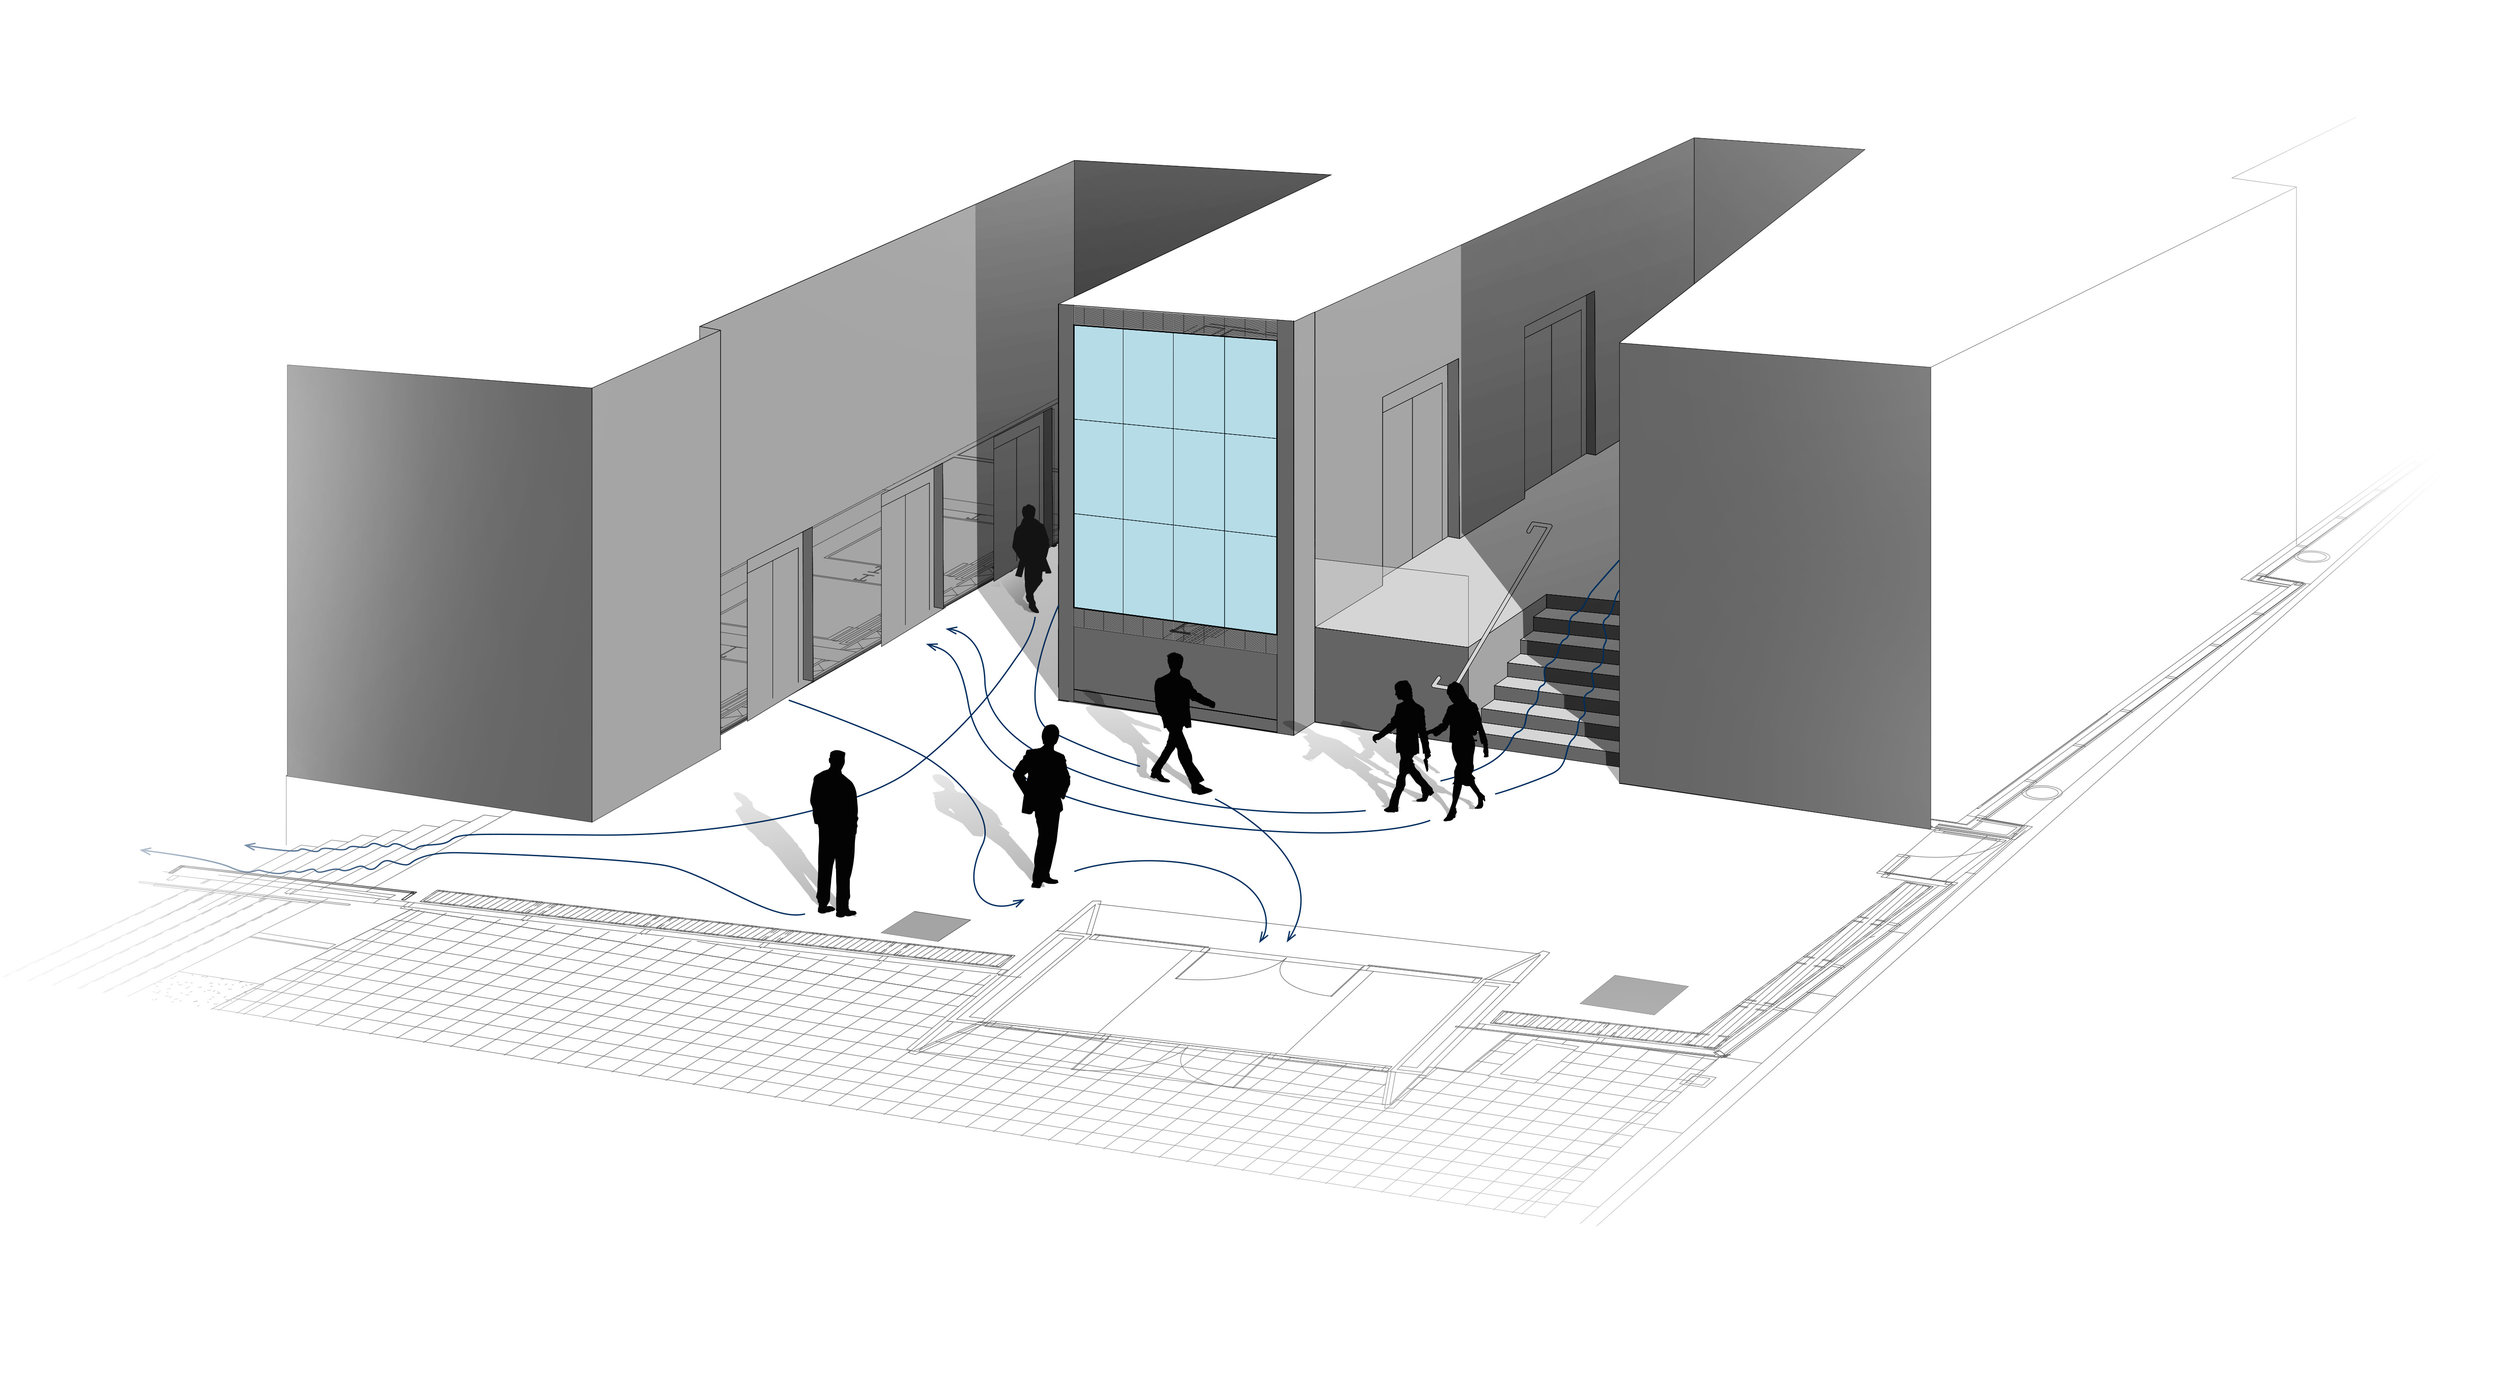 An overview of the lobby space and the predictable traffic patterns that would inform the location of the various sensors placed around the lobby, picking up on the movement of lobby guests.